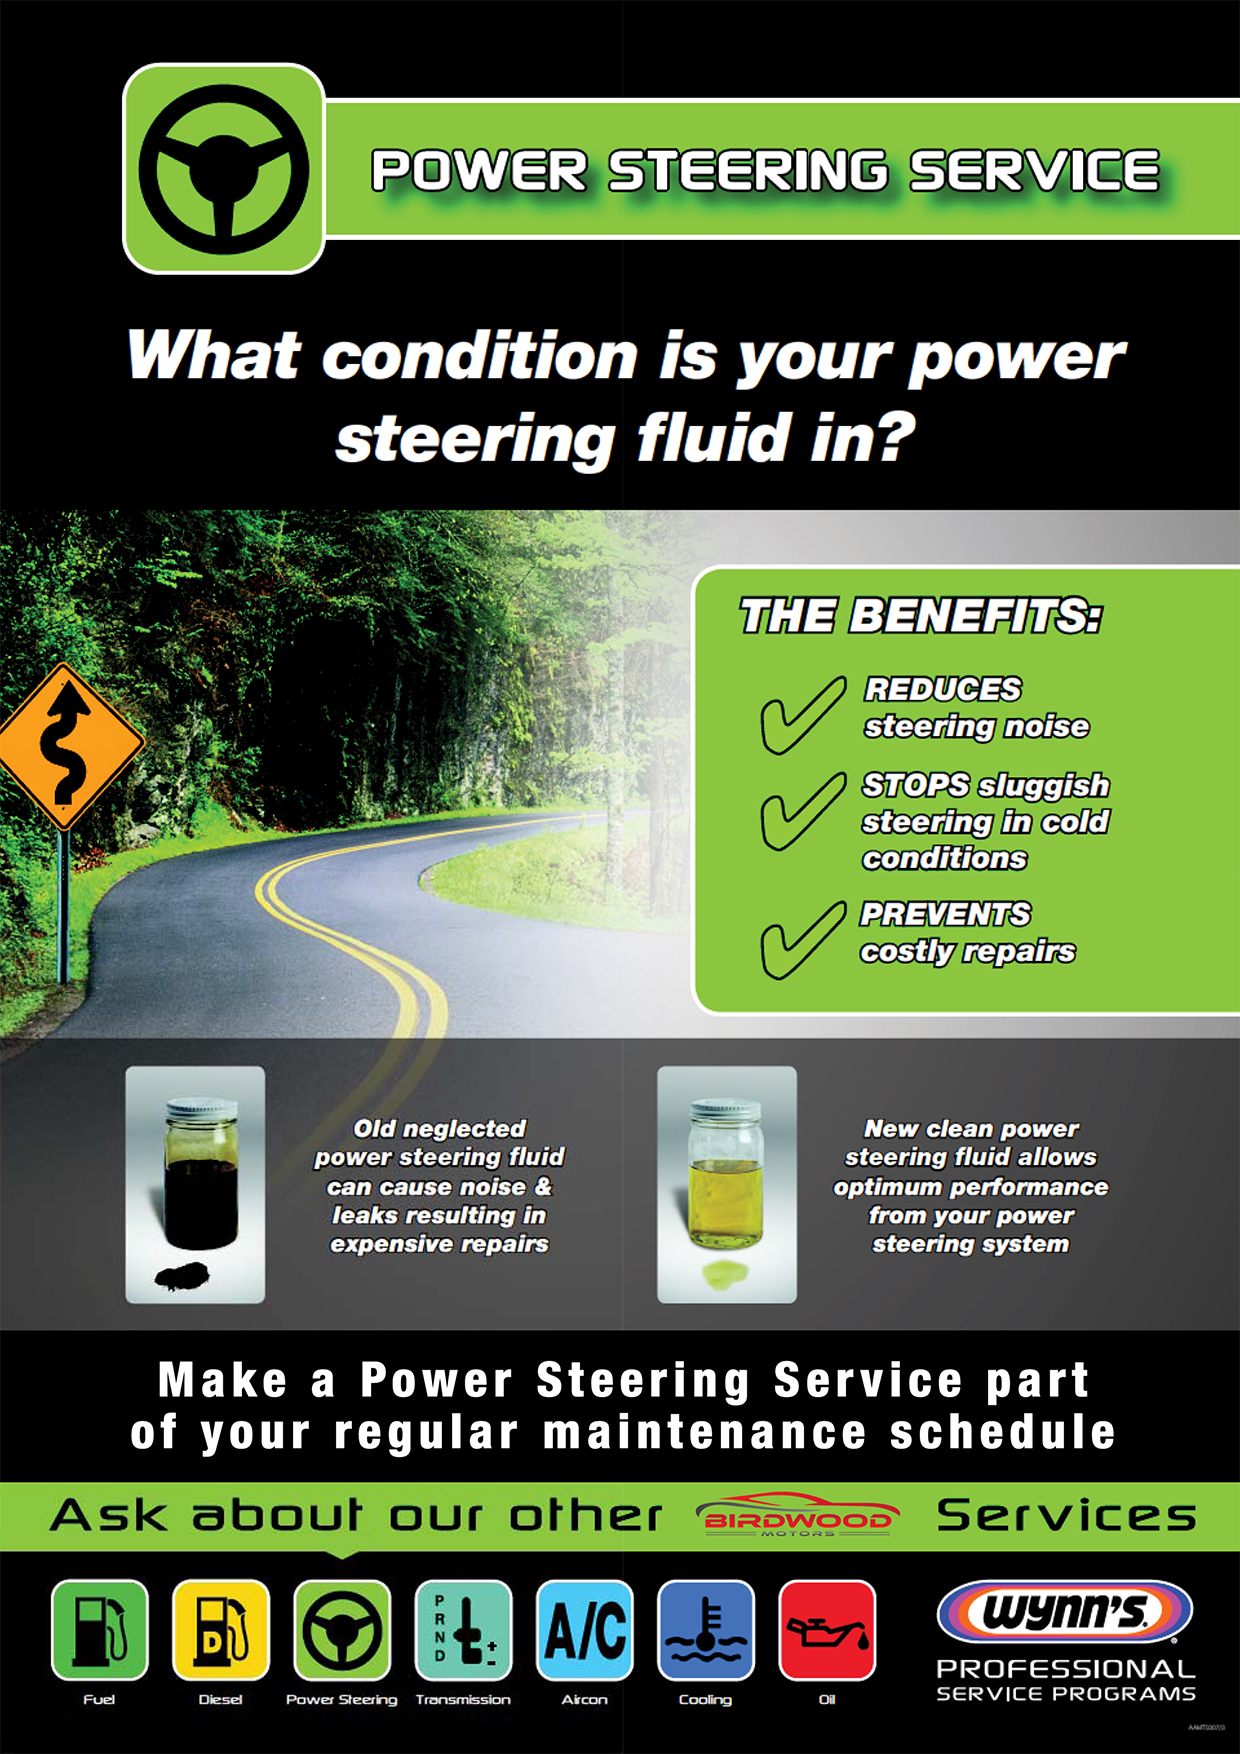 Power Steering Service Poster (Birdwood)